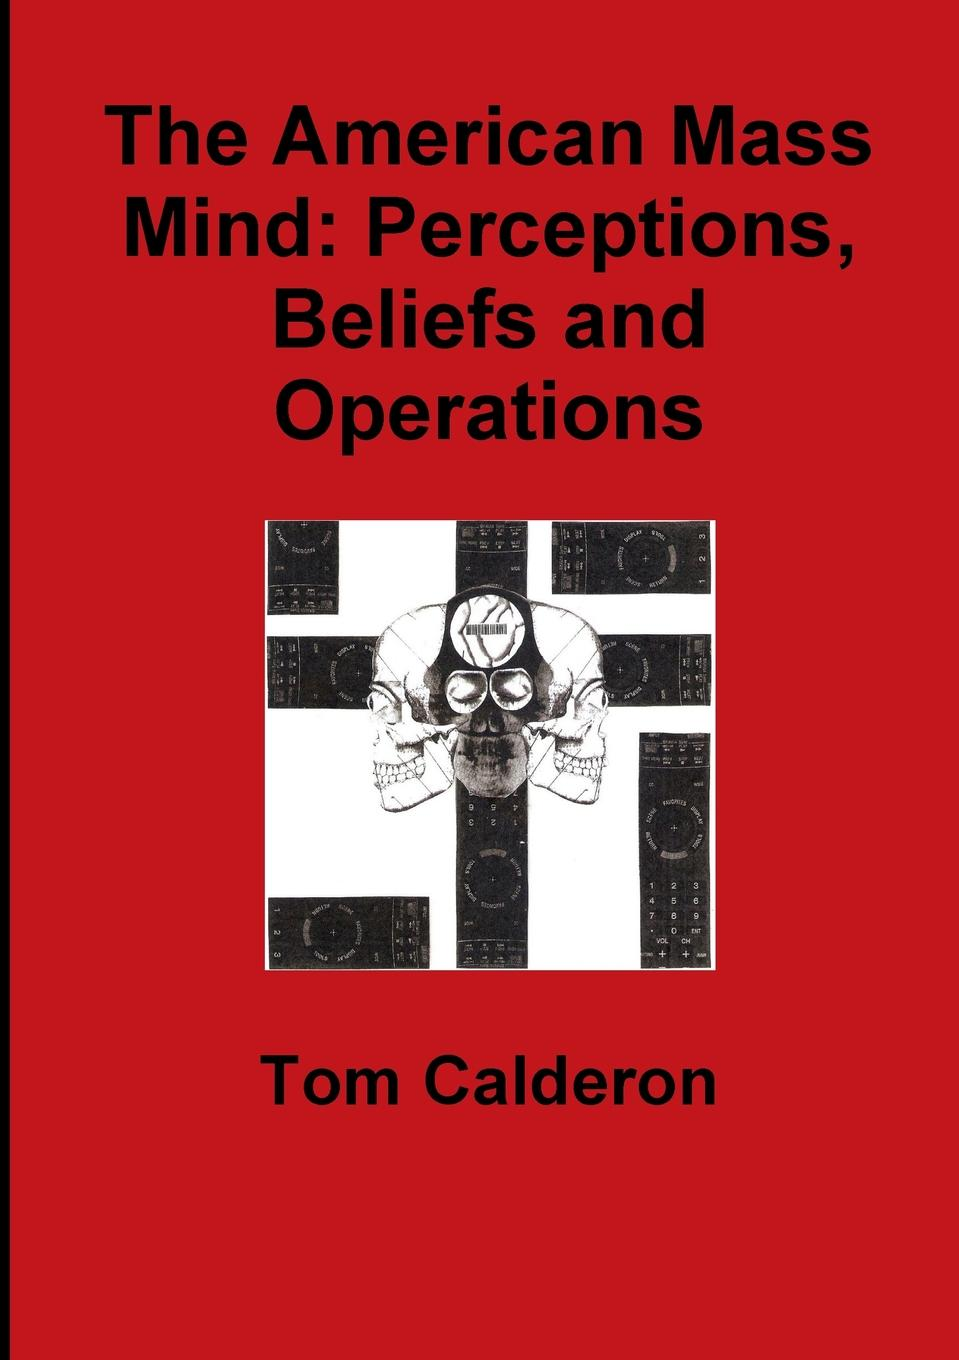 Tom Calderon The American Mass Mind. Perceptions, Beliefs and Operations irrational beliefs